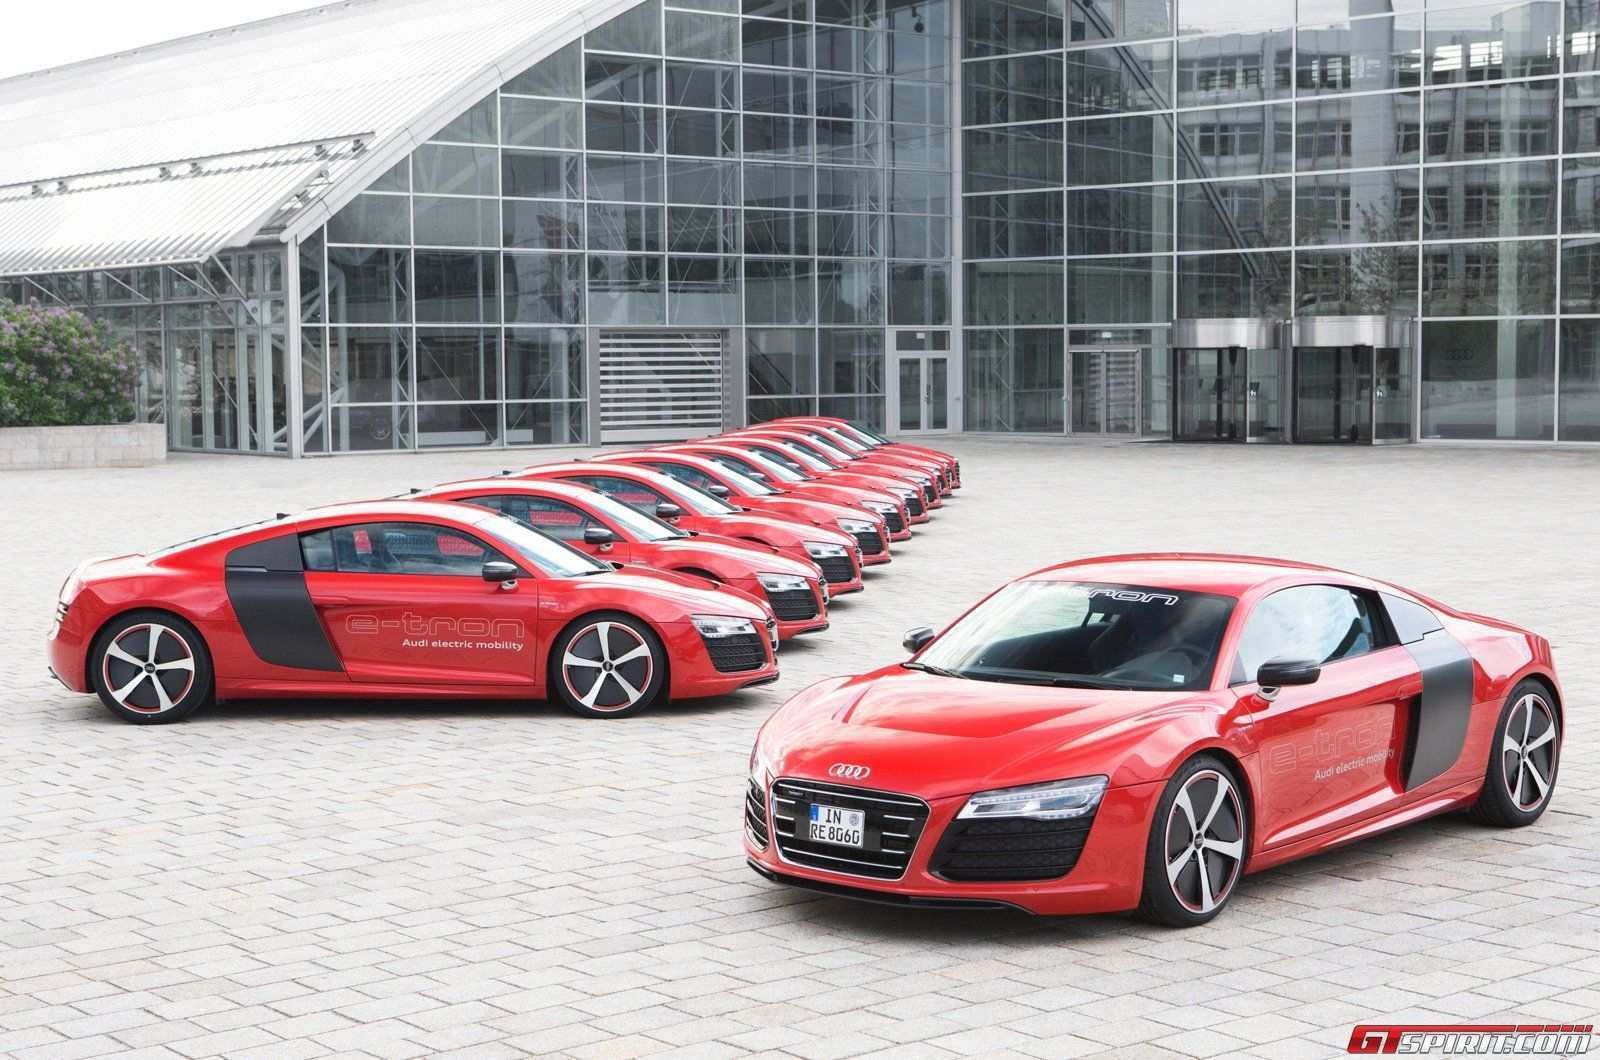 40 The Best 2020 Audi R8 E Tron Images